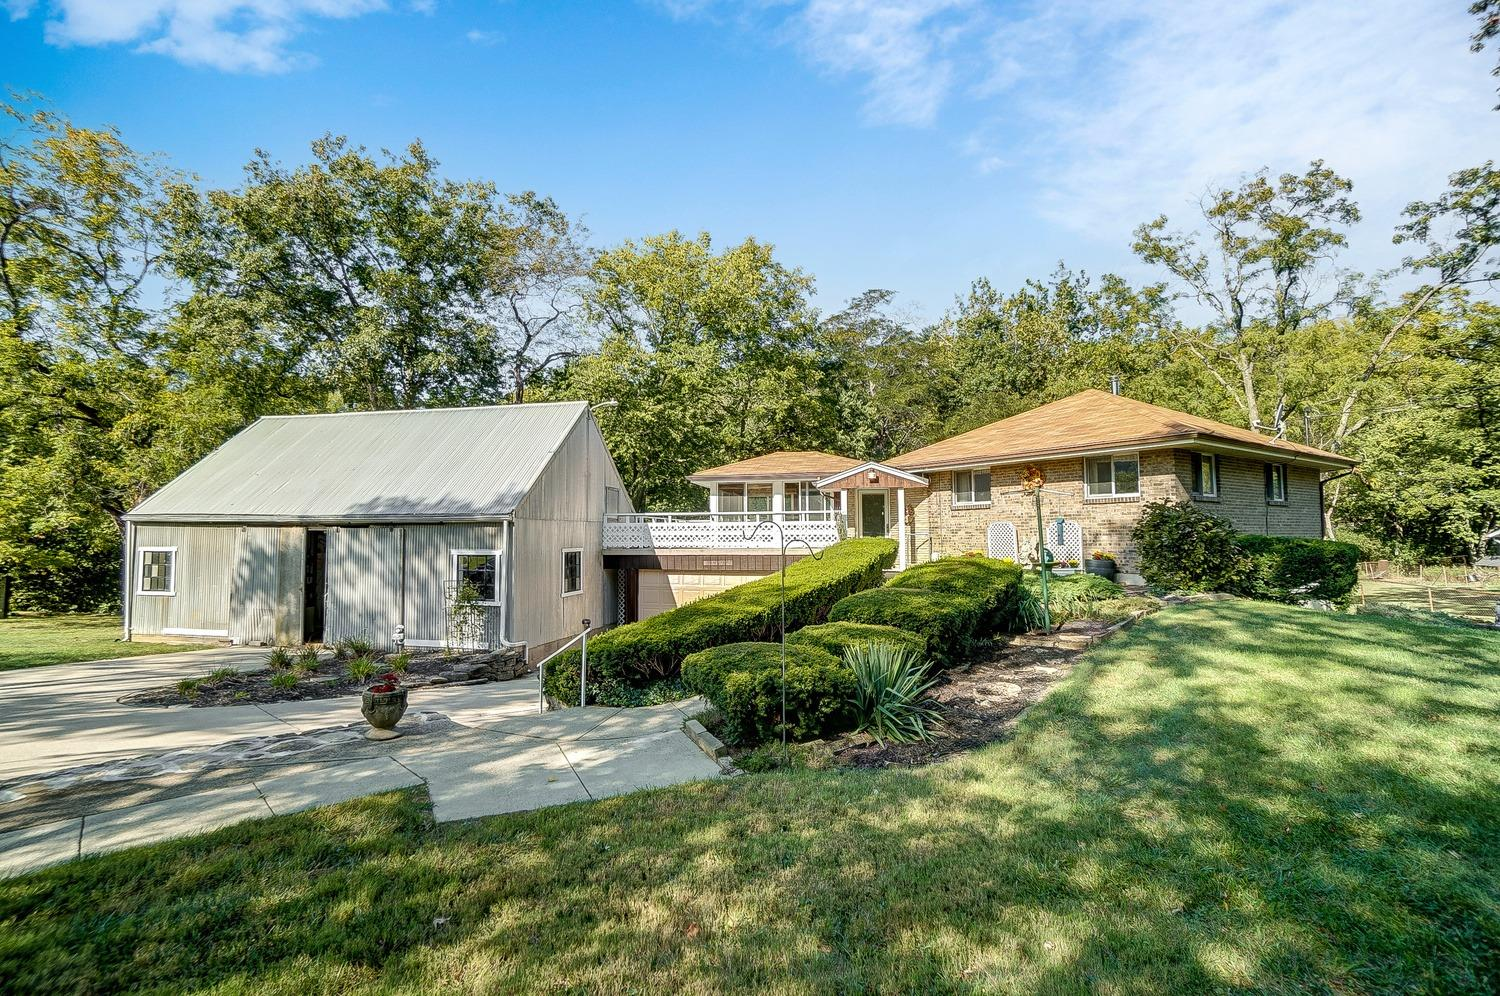 6005 Sheed Road, Green Twp, Ohio 45247, 3 Bedrooms Bedrooms, 5 Rooms Rooms,3 BathroomsBathrooms,Single Family Residence,For Sale,Sheed,1715687